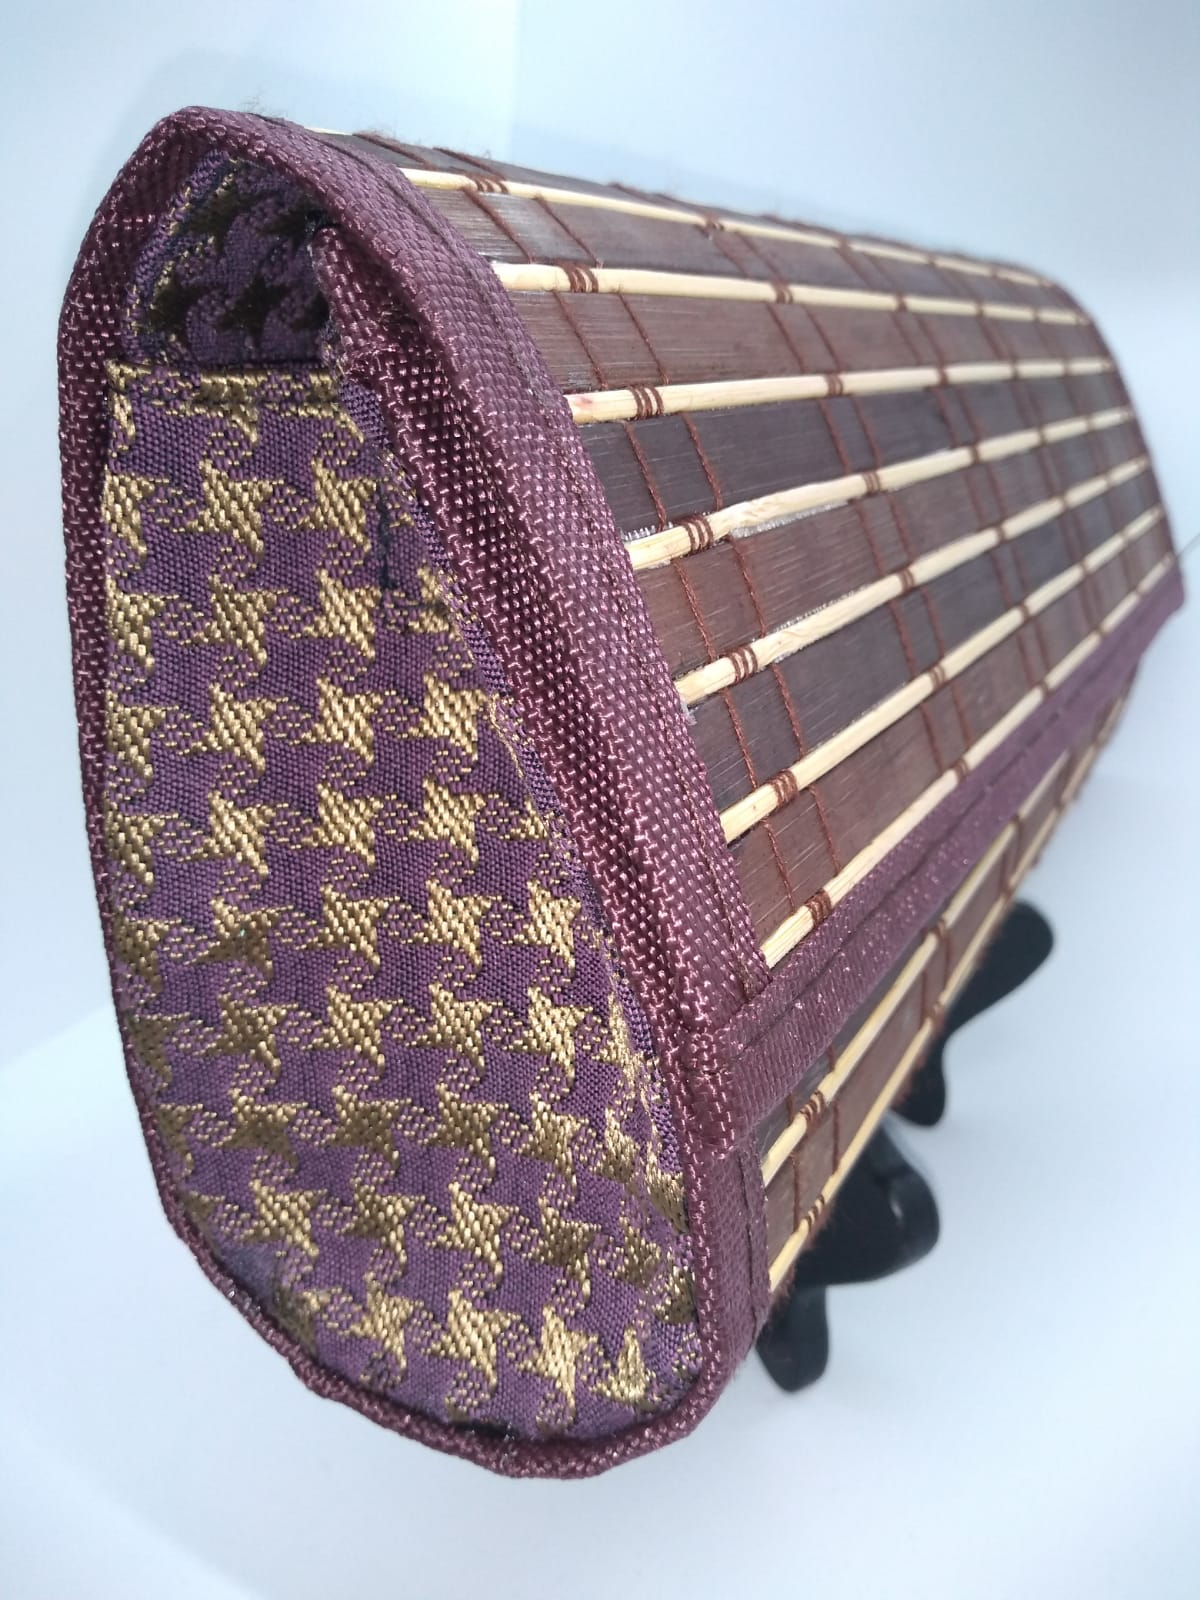 Side view of brown wood clutch with purple and gold hounds tooth side panels